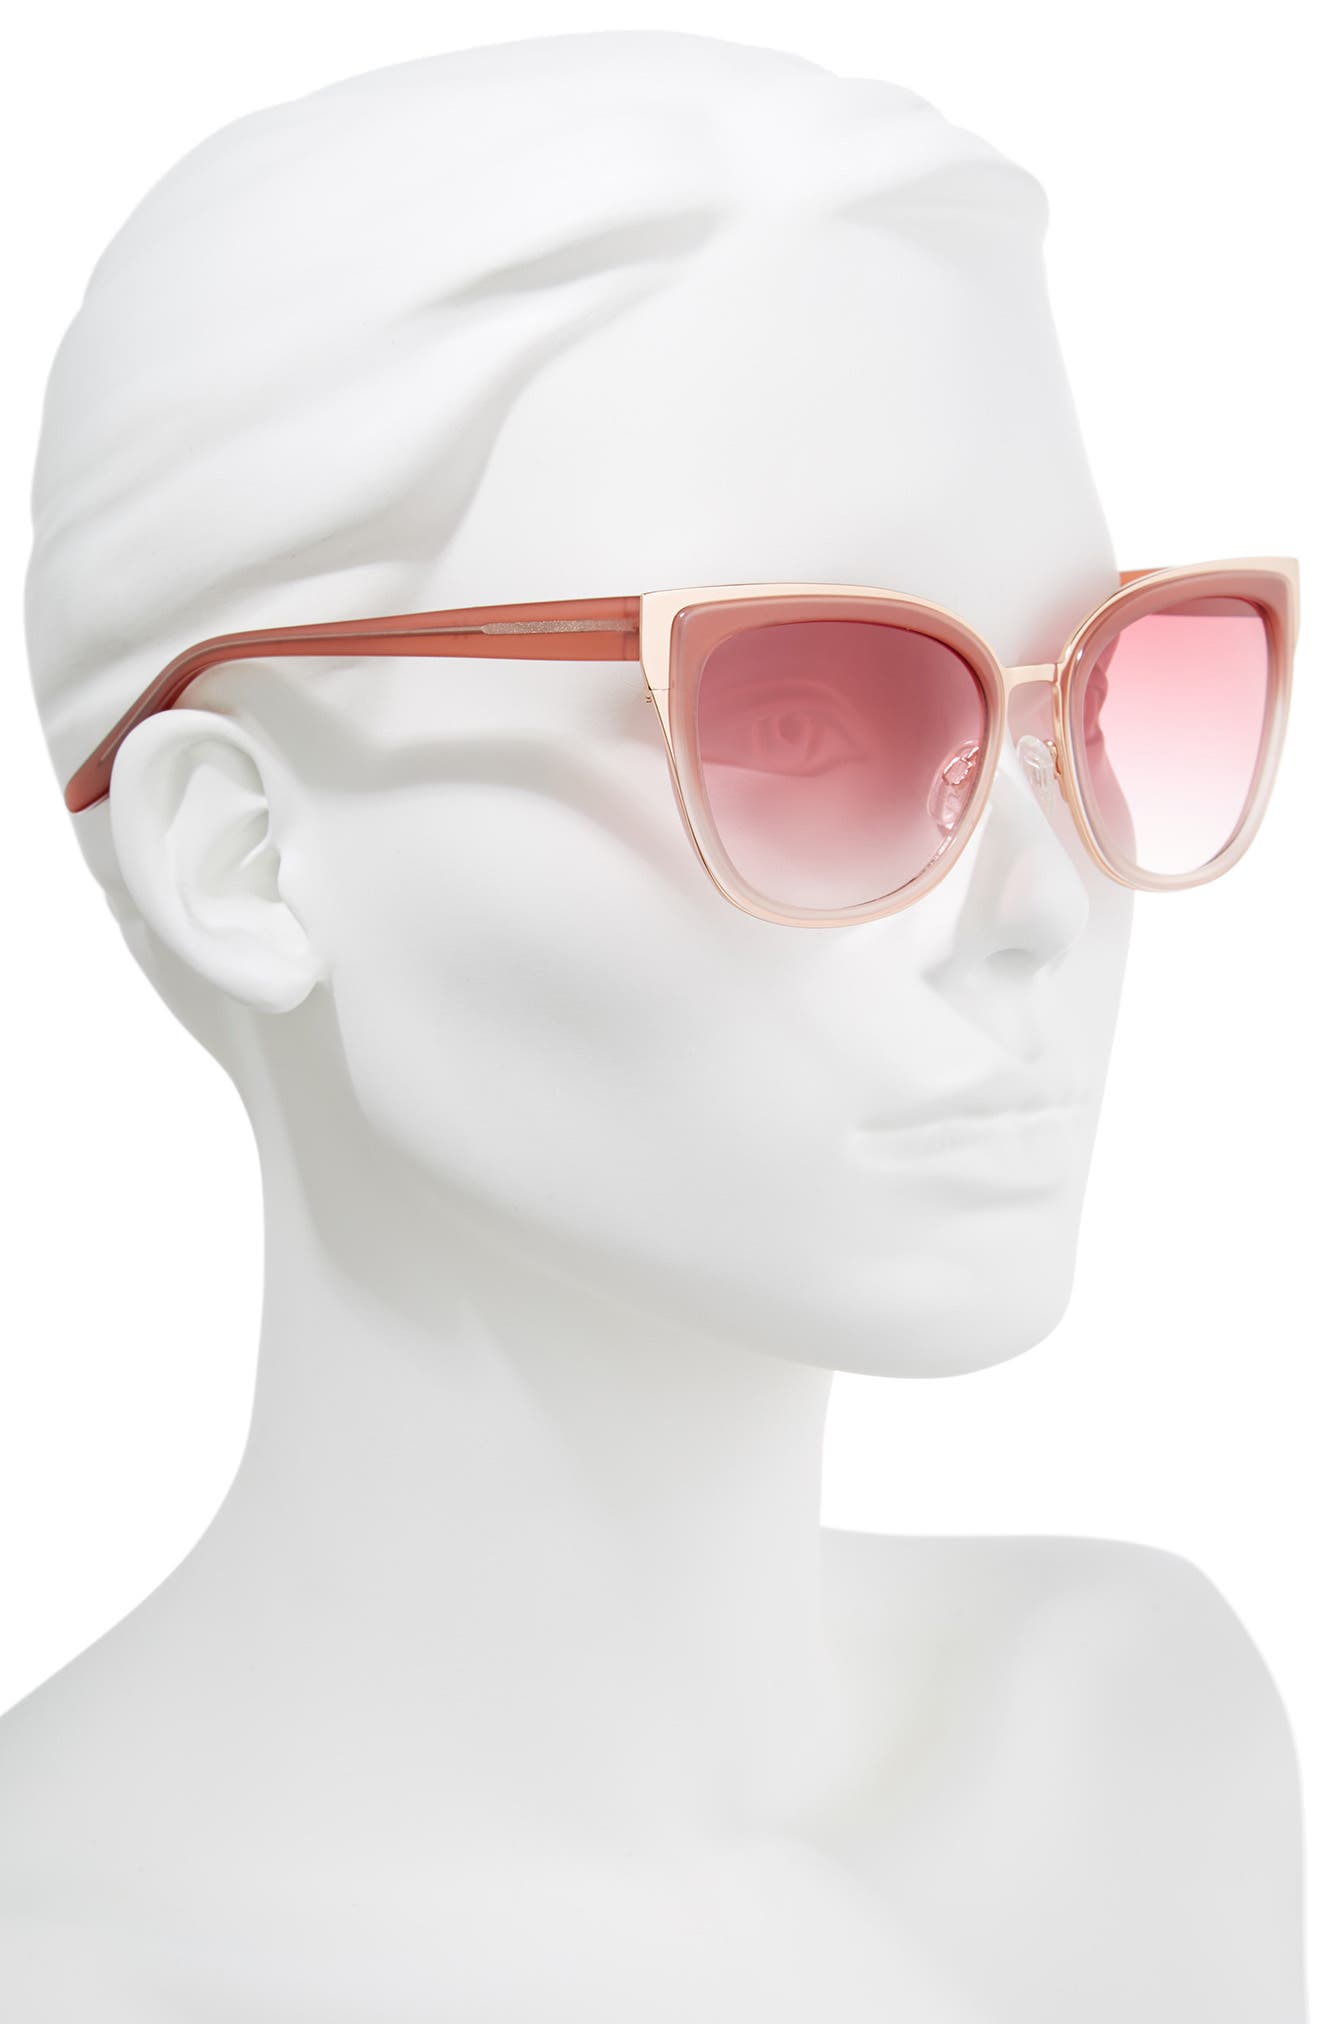 Lillian 56mm Sunglasses,                             Alternate thumbnail 2, color,                             Milky Pink- Rose Gold